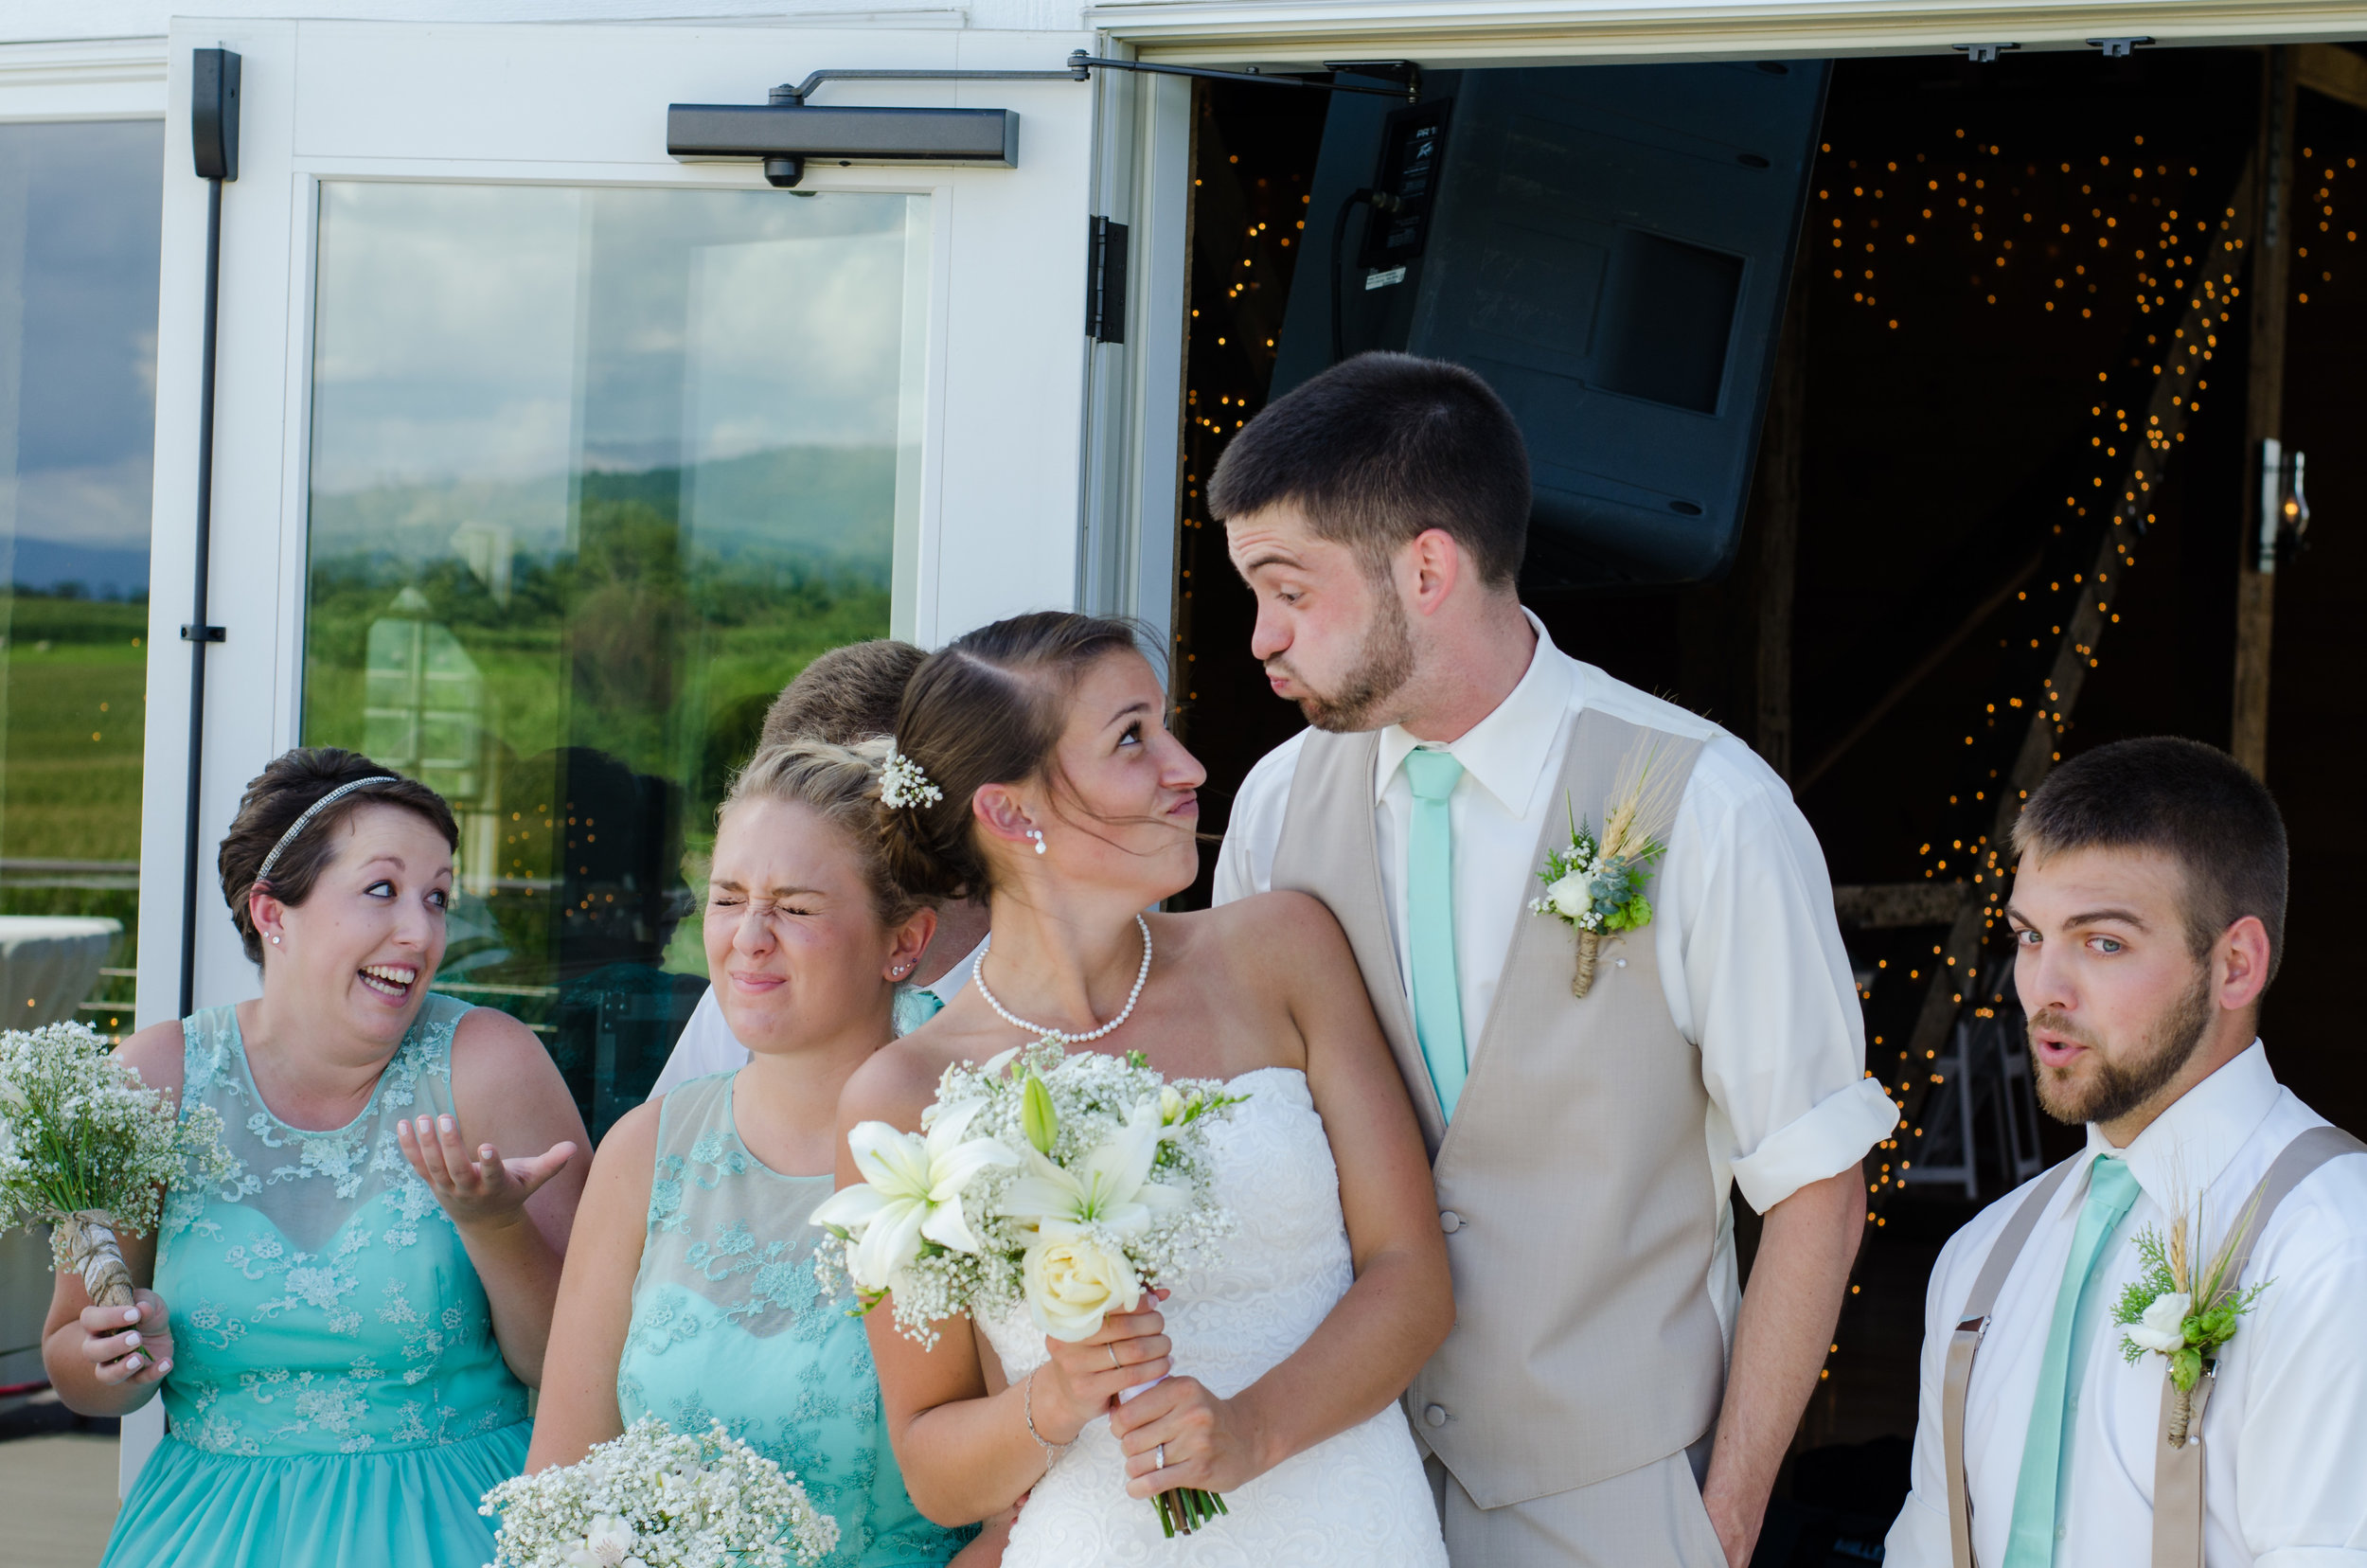 c mckee cross keys wedding 66.jpg